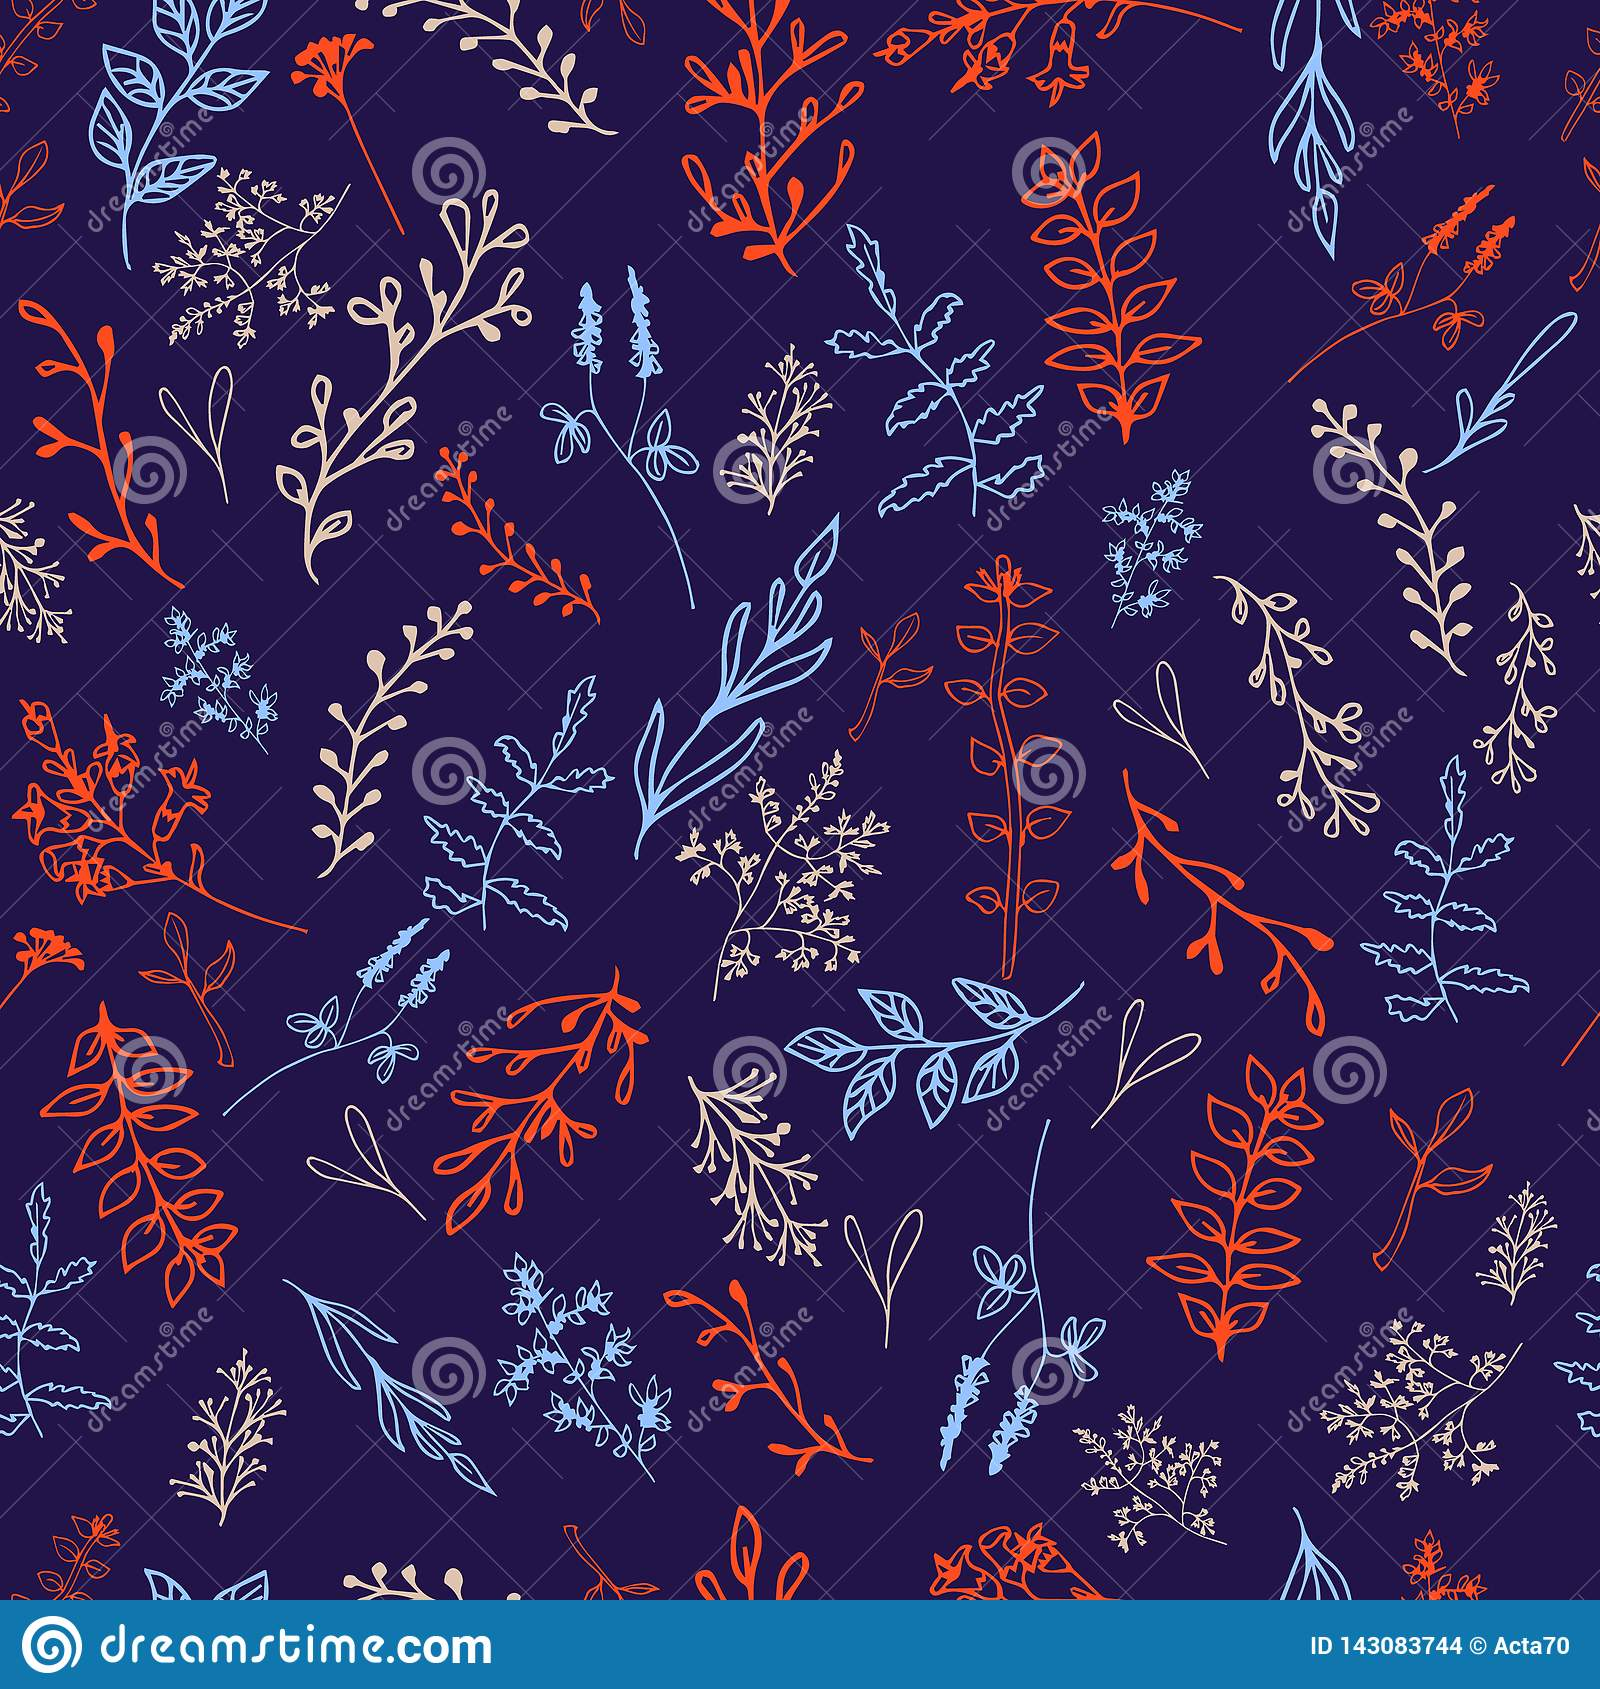 Seamless pattern with flowers on the dark background